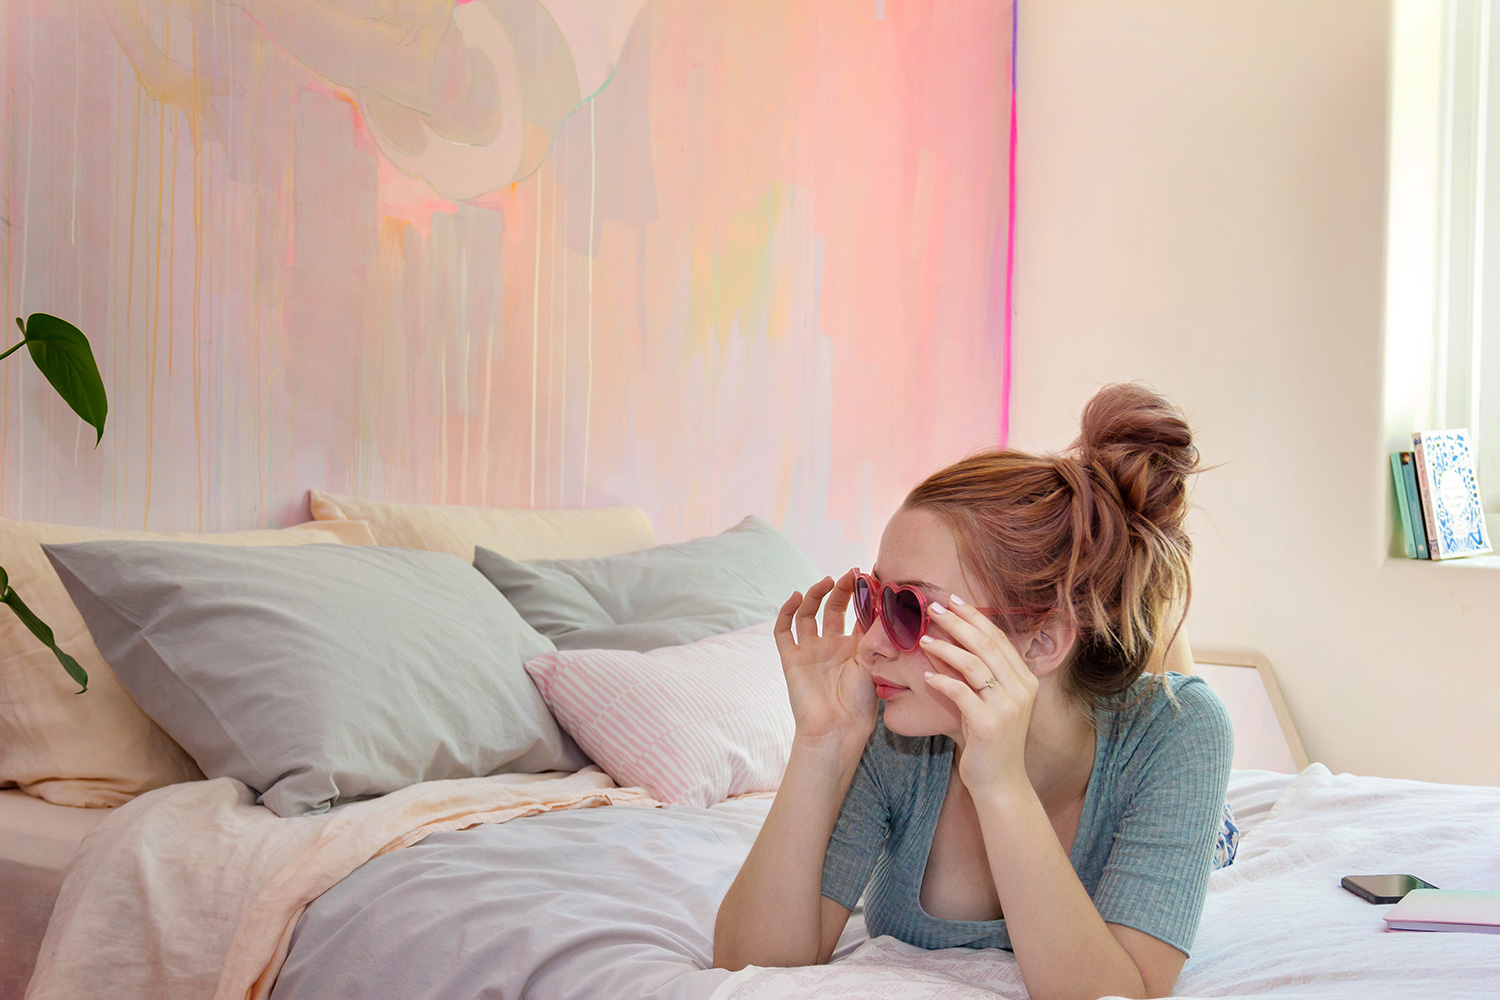 Abstract pastel mural provides a pretty backdrop for this model as she relaxes on the bed wearing love heart sunglasses.